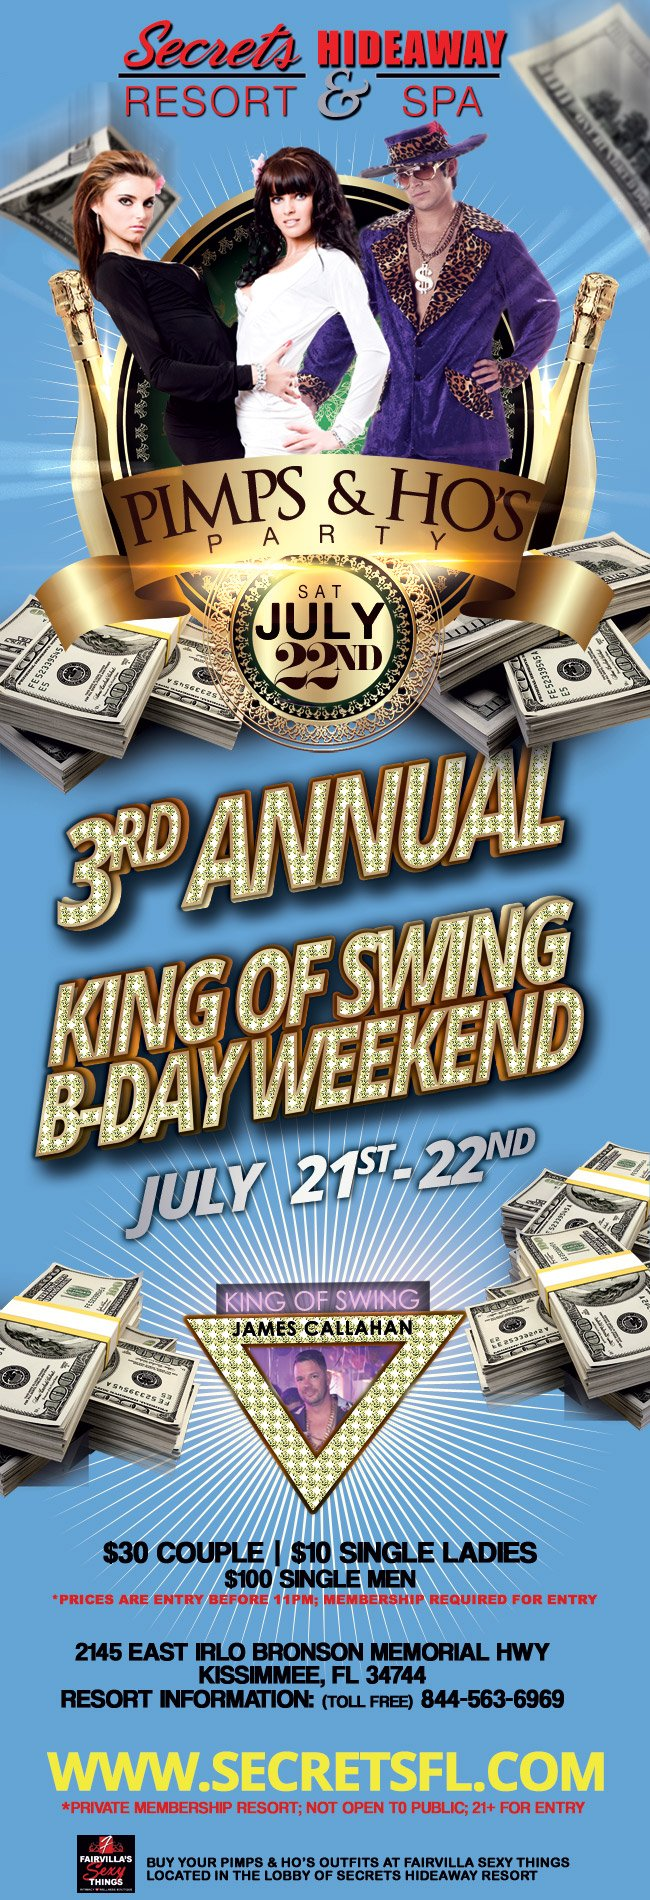 Events - Pimps & Ho's - King of Swing B-day Weekend Orlando, Florida Lifestyle and Swinger Parties